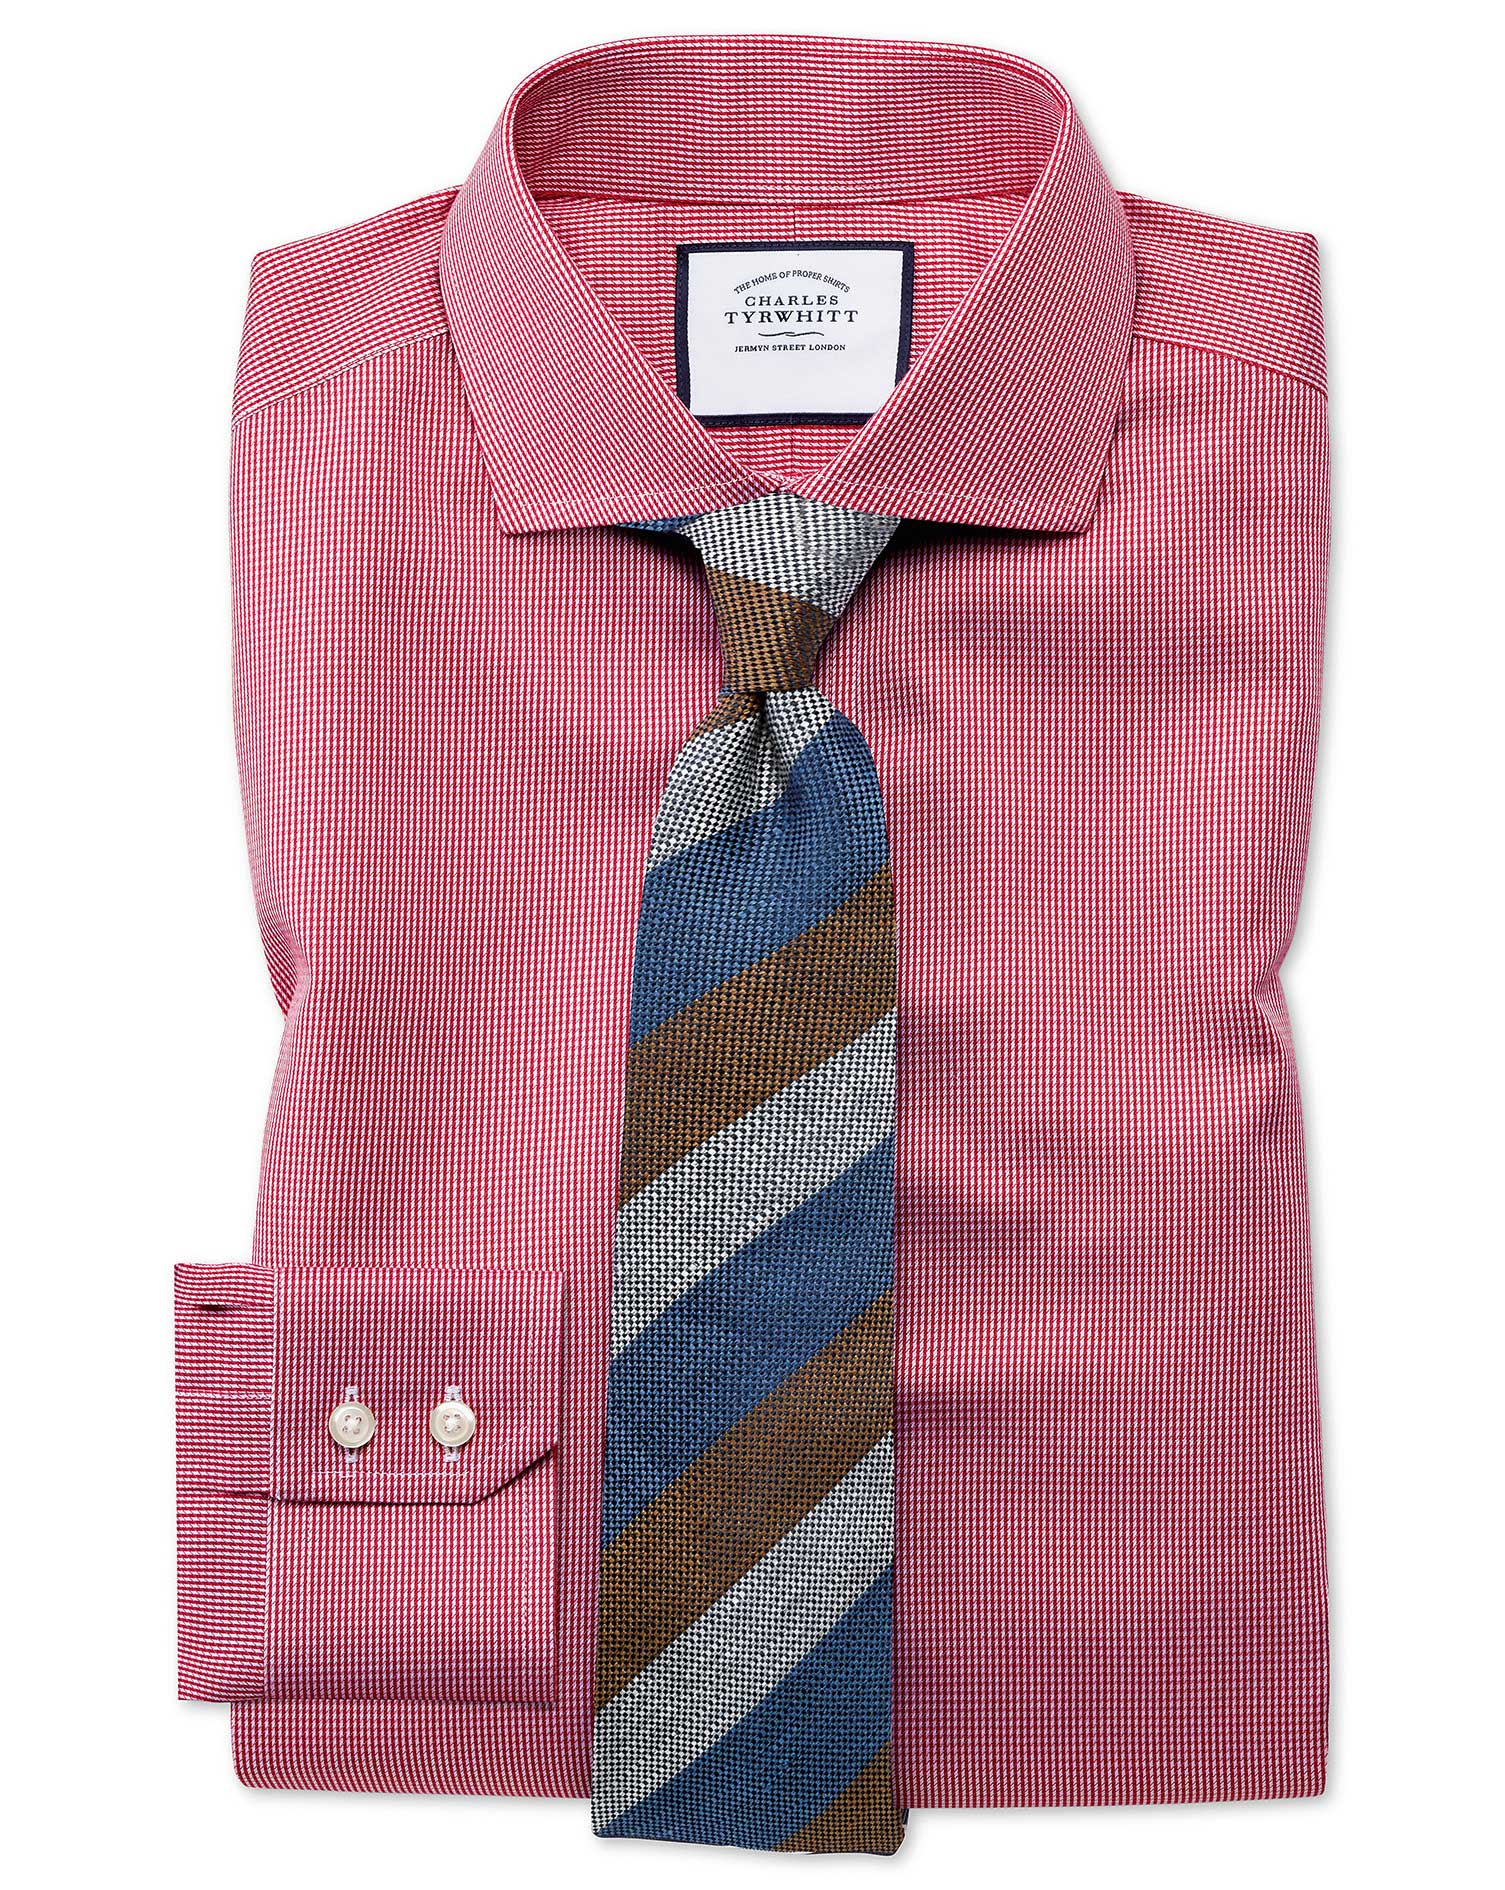 Slim Fit Cutaway Collar Non-Iron Puppytooth Bright Pink Cotton Business Shirt Single Cuff Size 44/86 by Charles Tyrwhitt